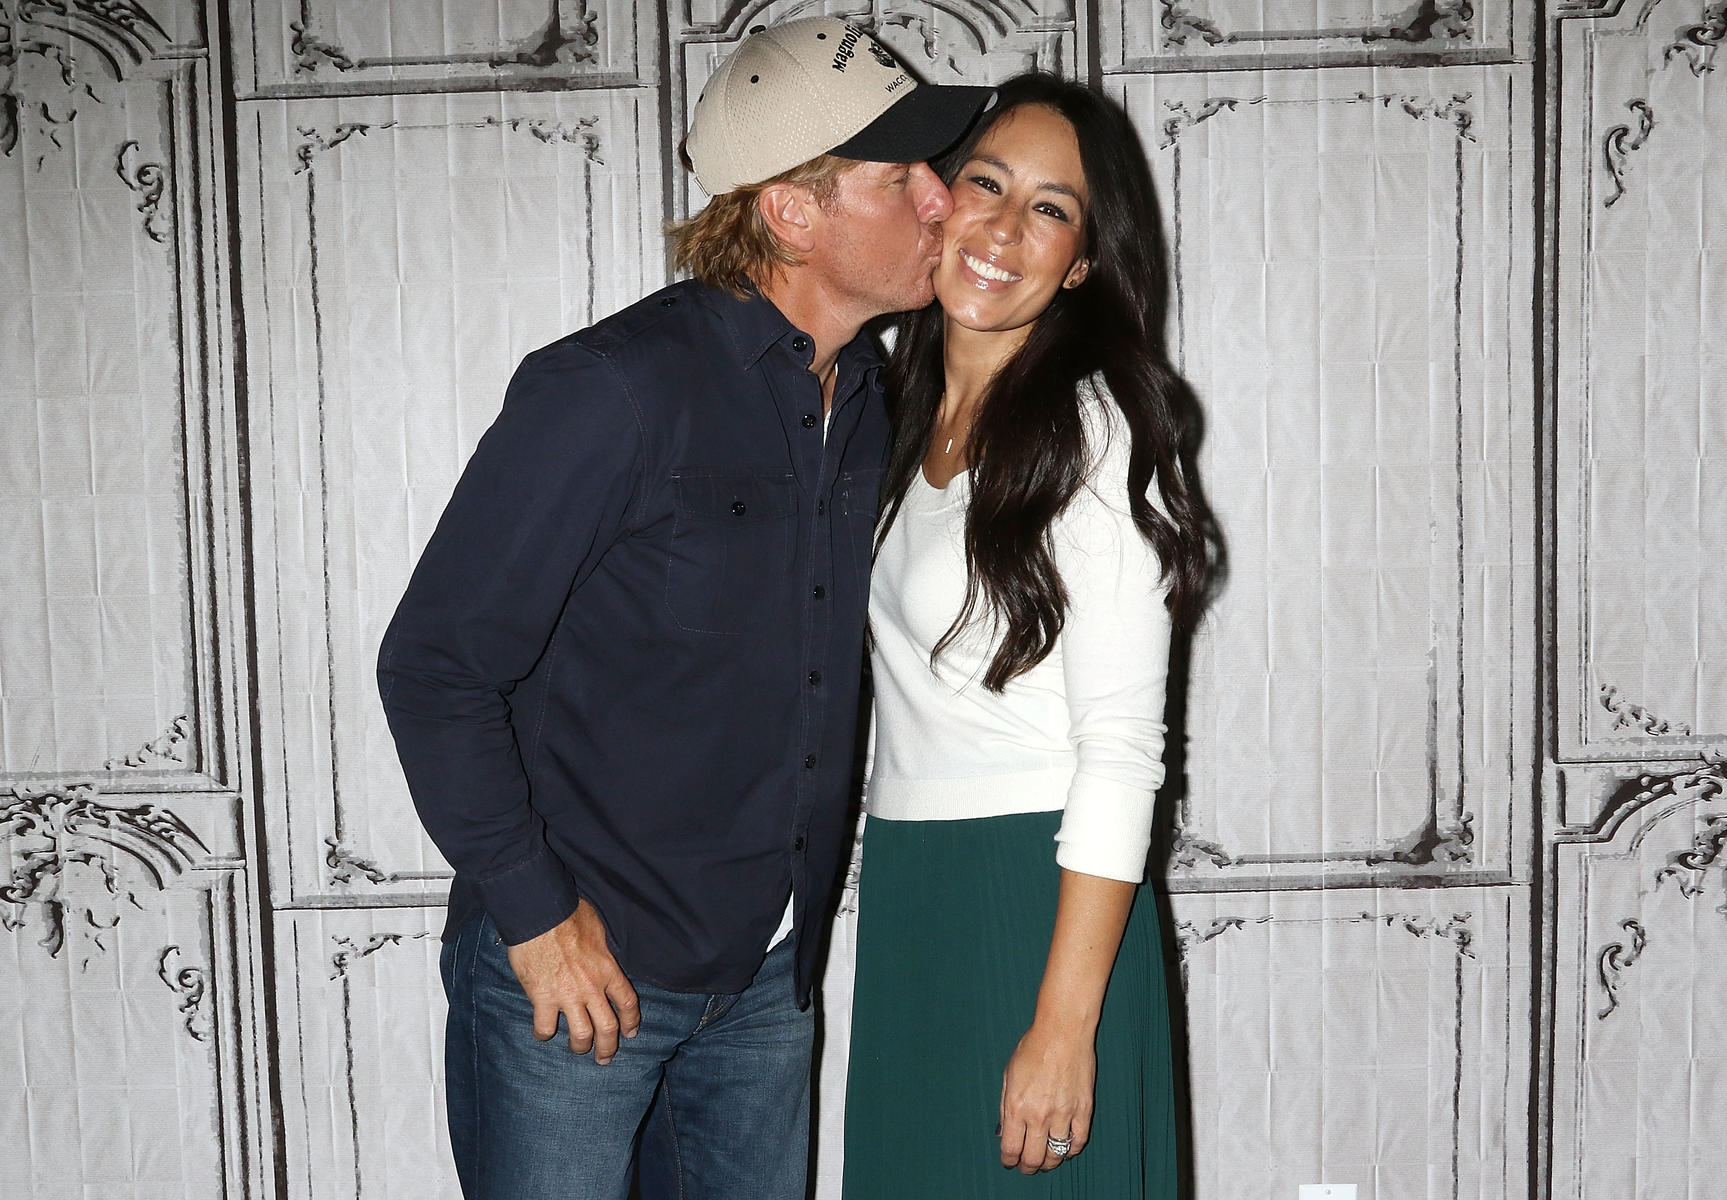 Joanna Gaines' Christmas Decorations Are Worthy of the North Pole